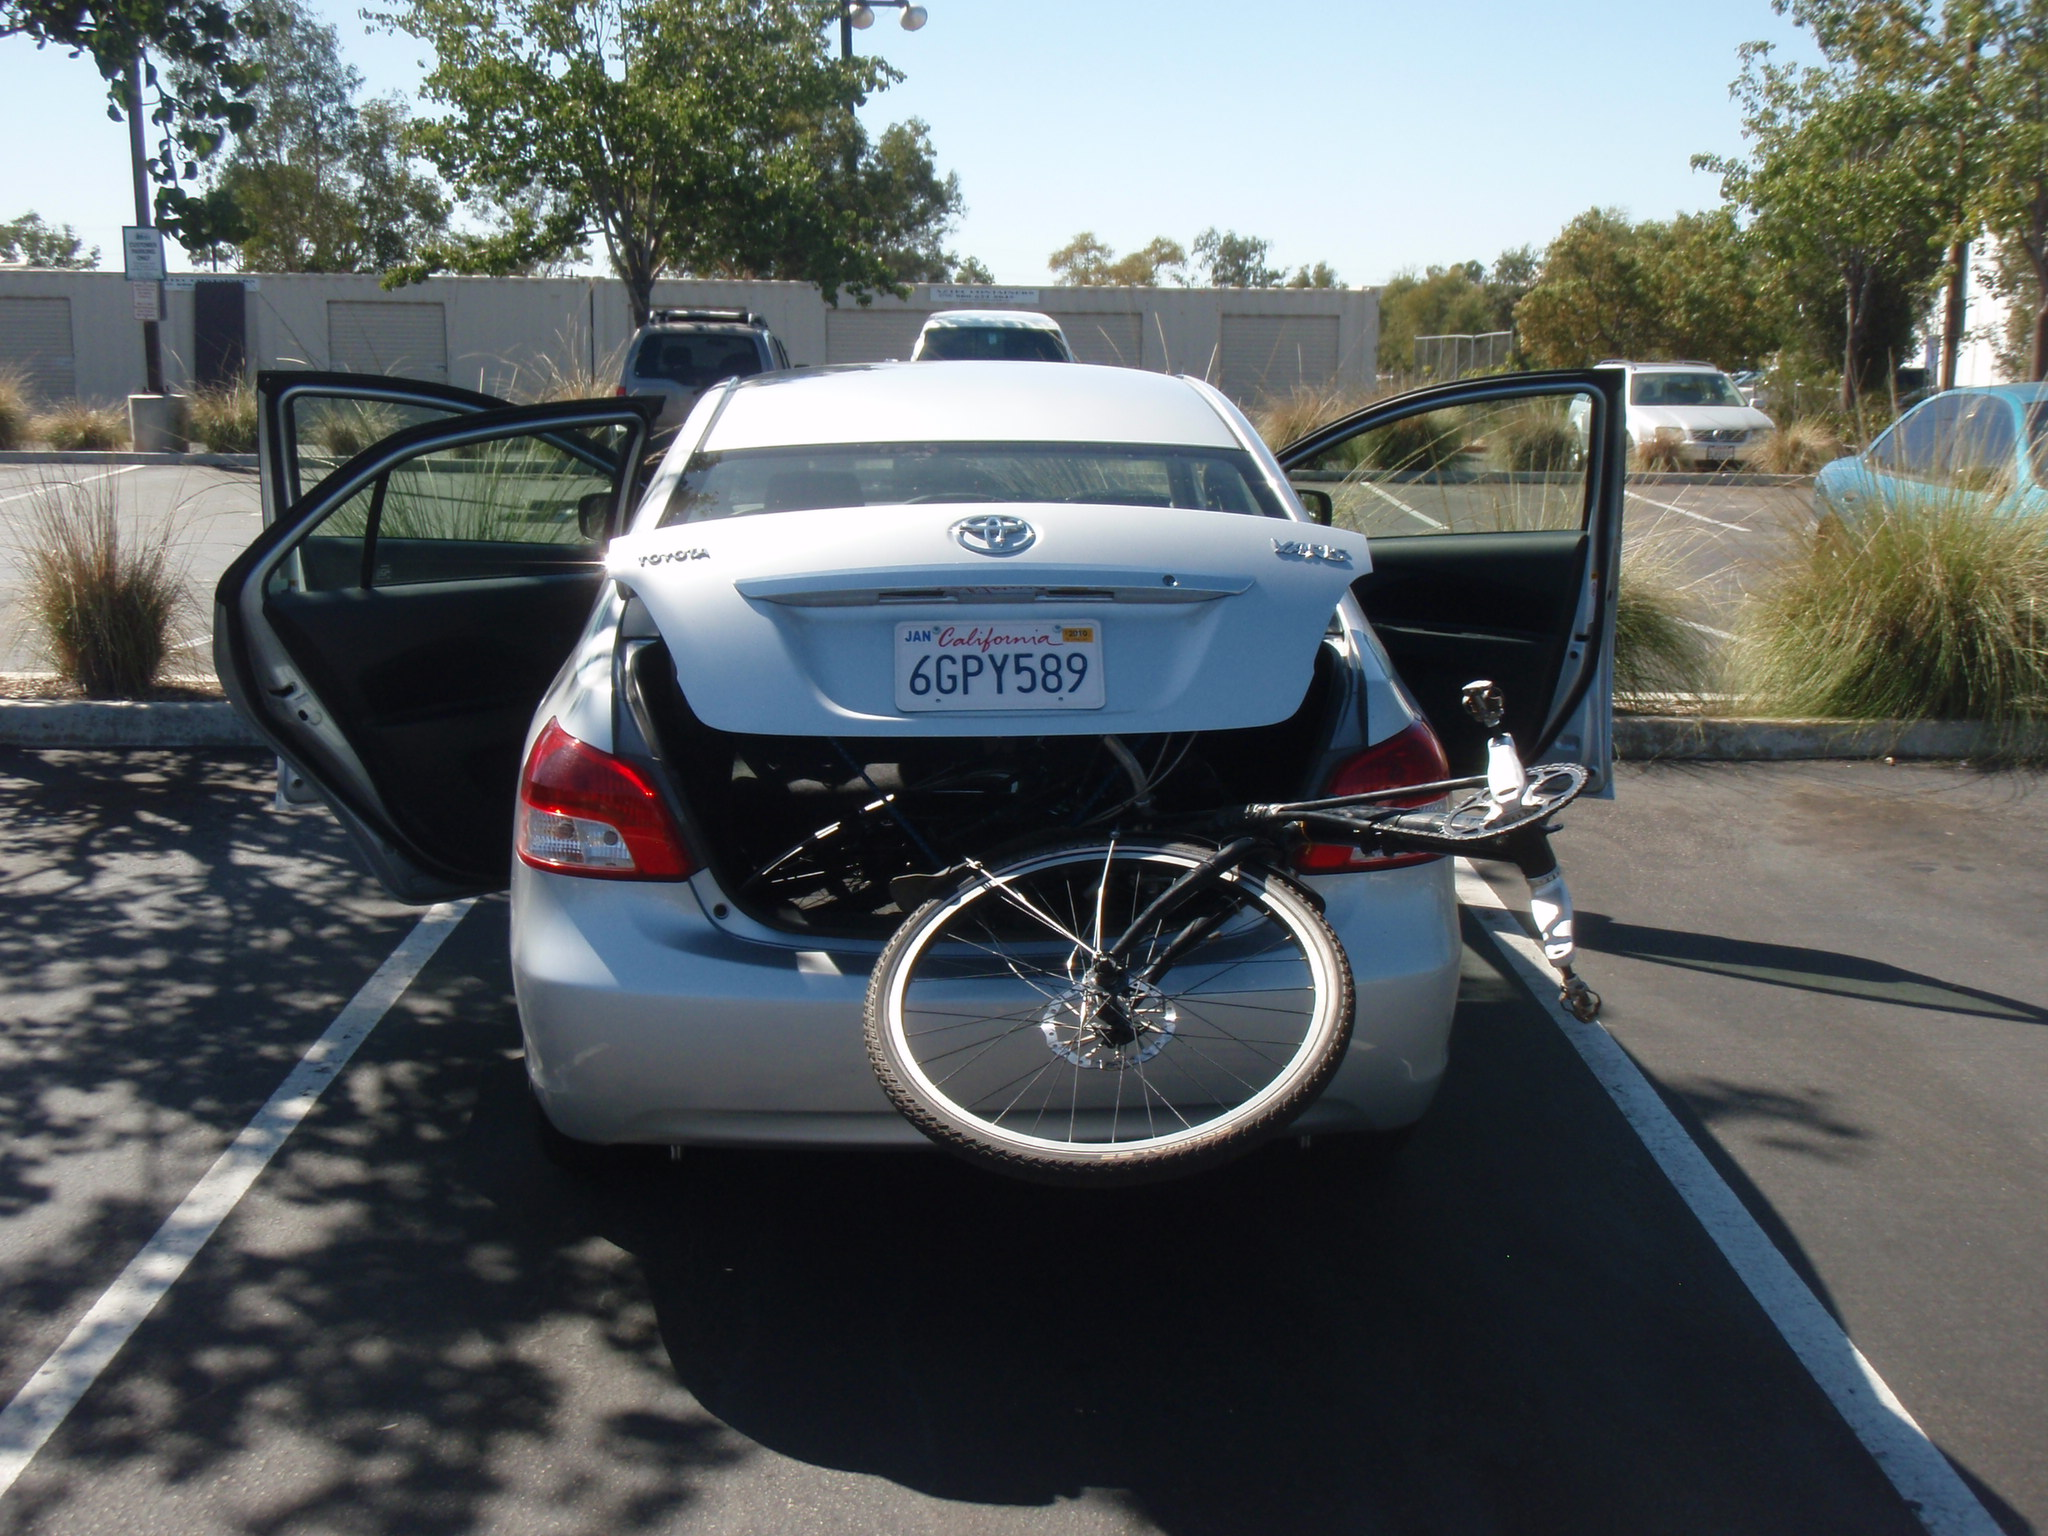 Recumbent sticking out of the back of small rental car